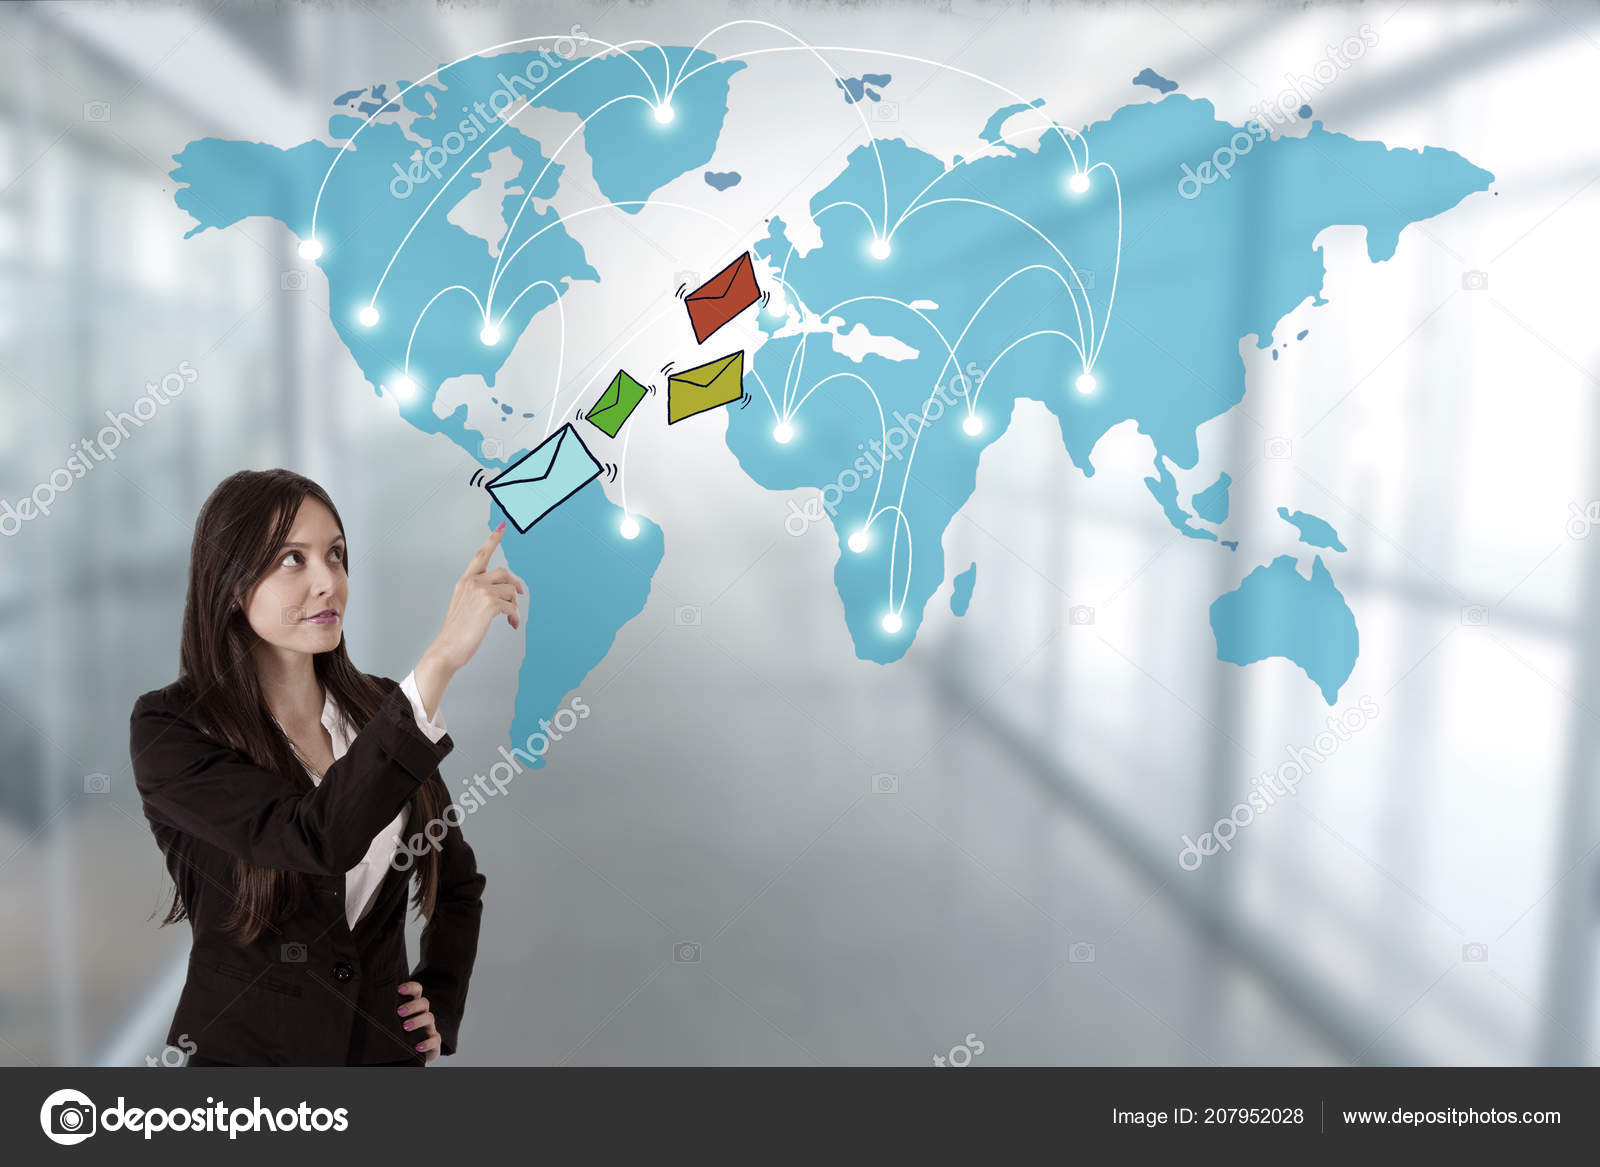 Business Woman Email World Map — Stockfoto © carballo #207952028